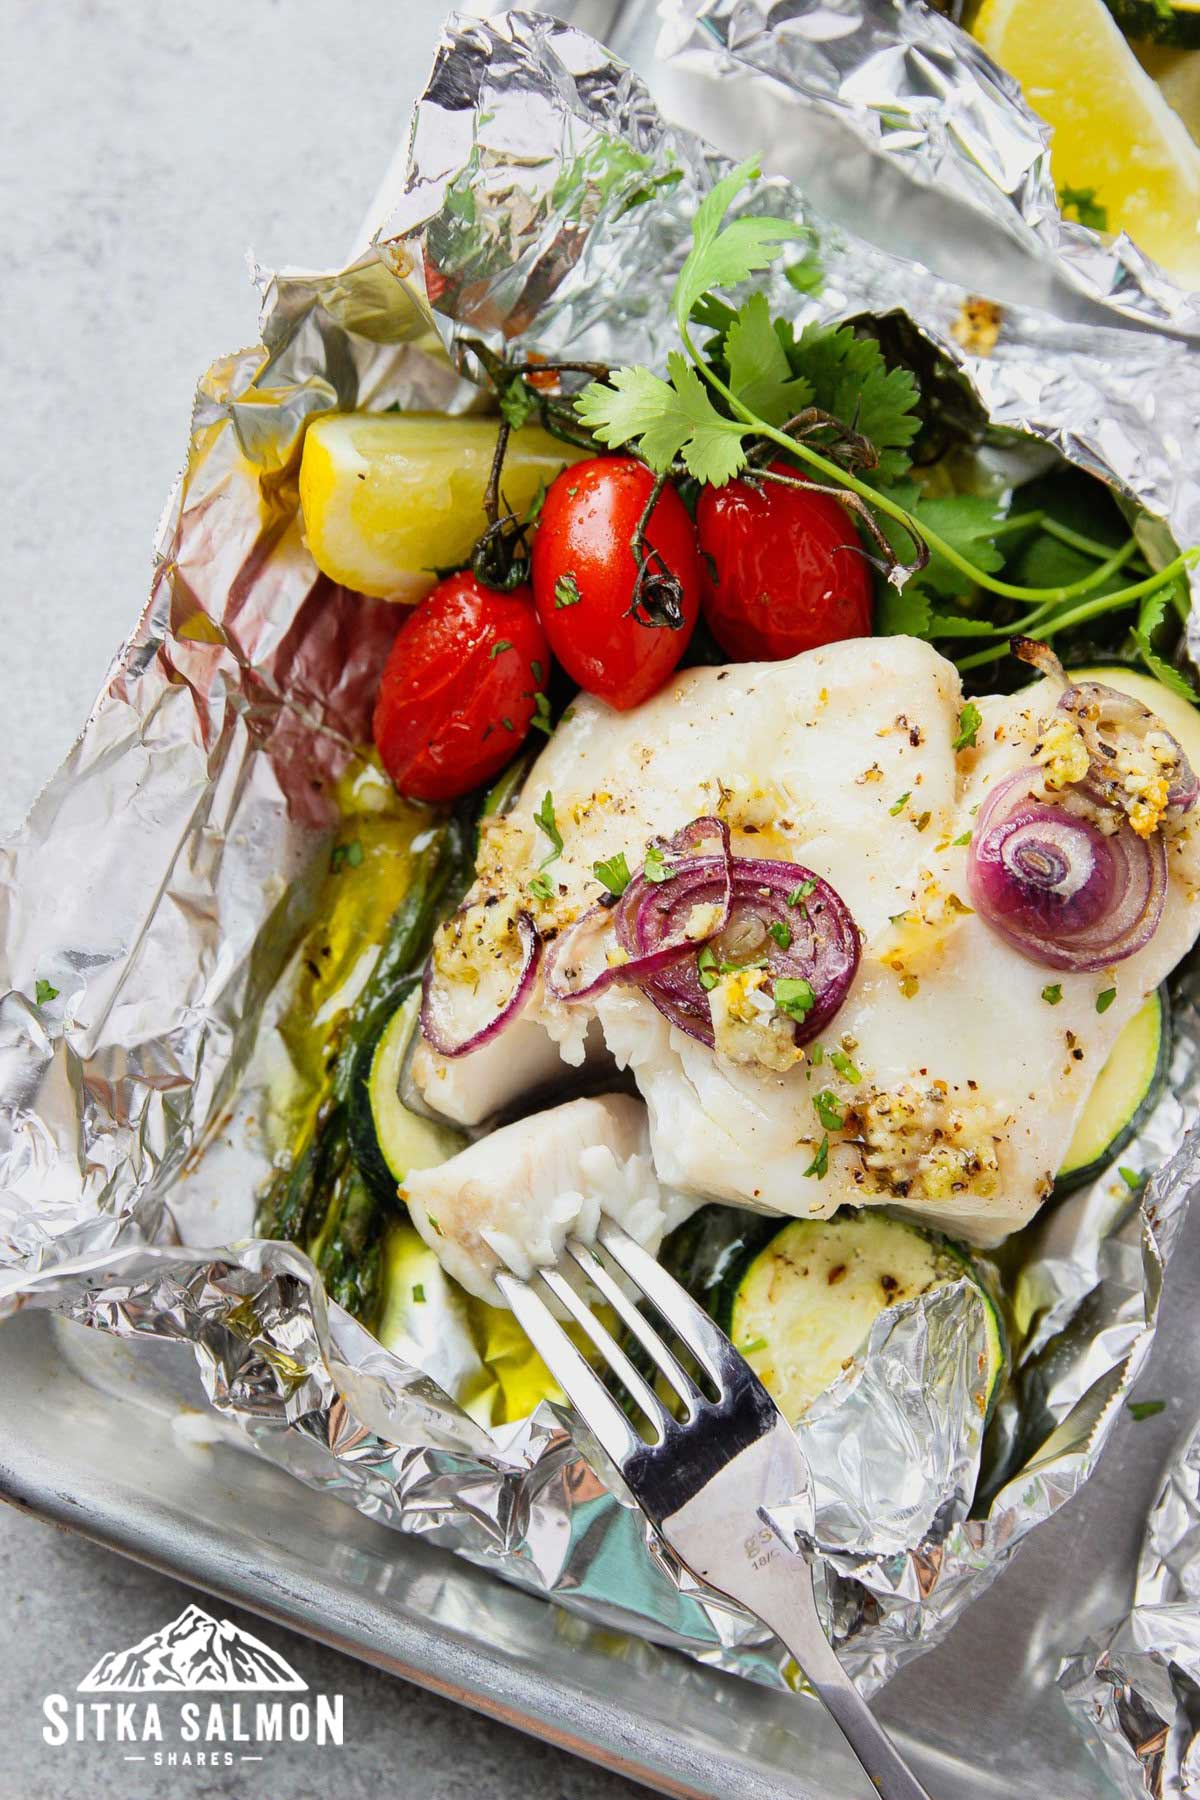 Baked Fish-In-Foil with Vegetables Recipe | Sitka Salmon Shares